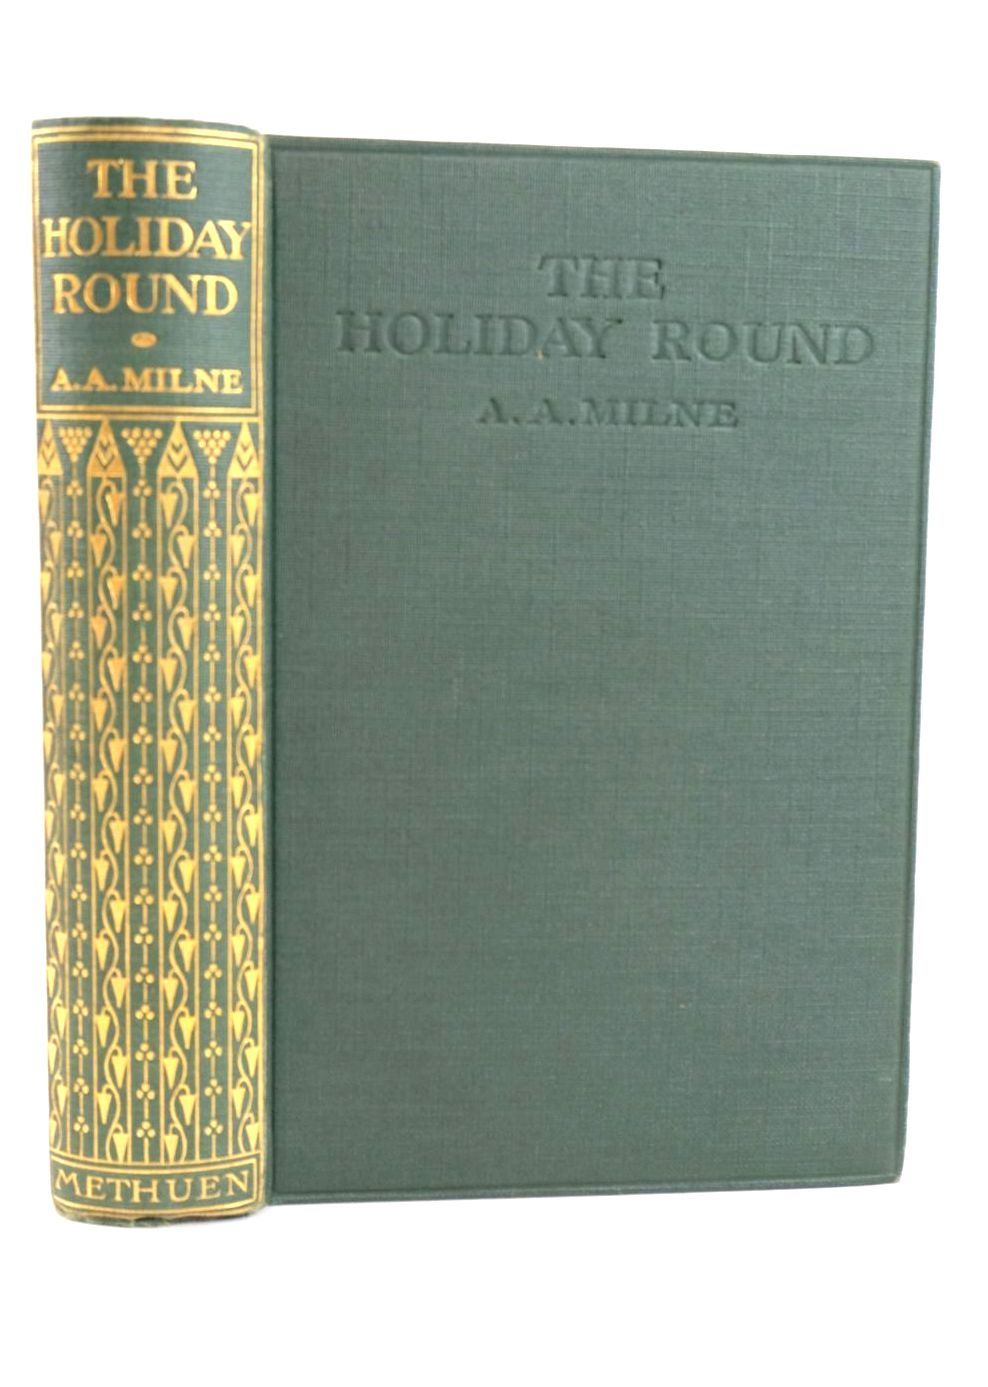 Photo of THE HOLIDAY ROUND written by Milne, A.A. published by Methuen & Co. Ltd. (STOCK CODE: 1318844)  for sale by Stella & Rose's Books